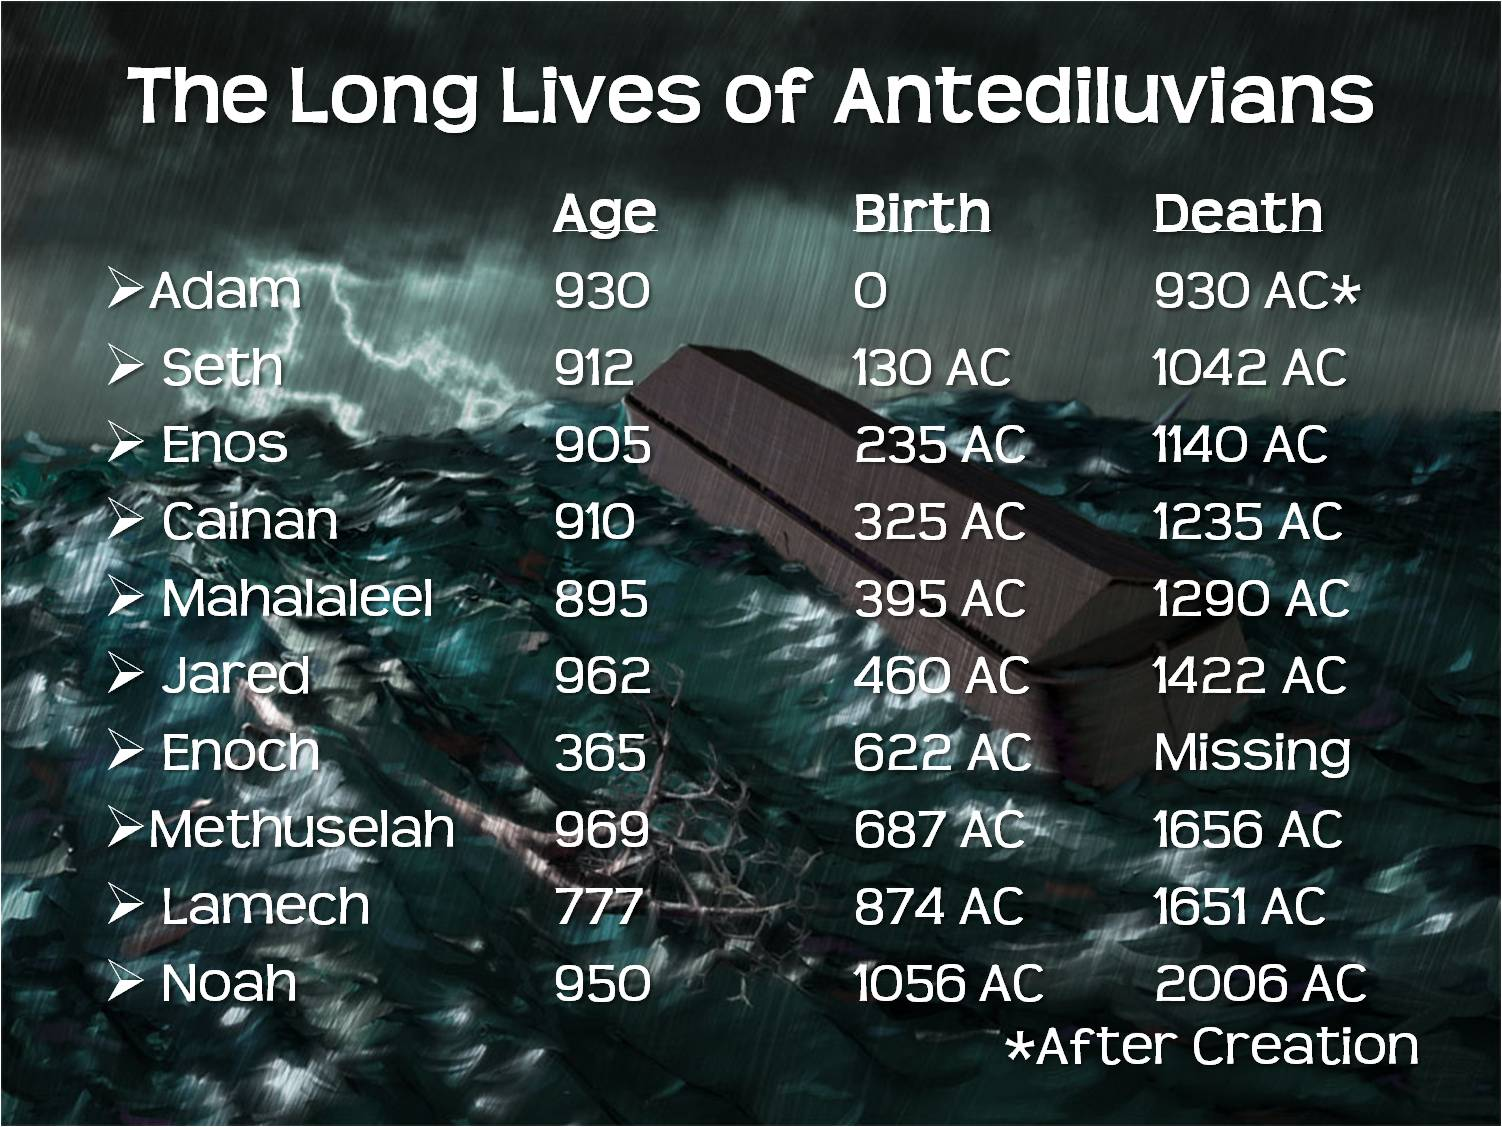 Is There Evidence For Long Life Spans in the Bible?